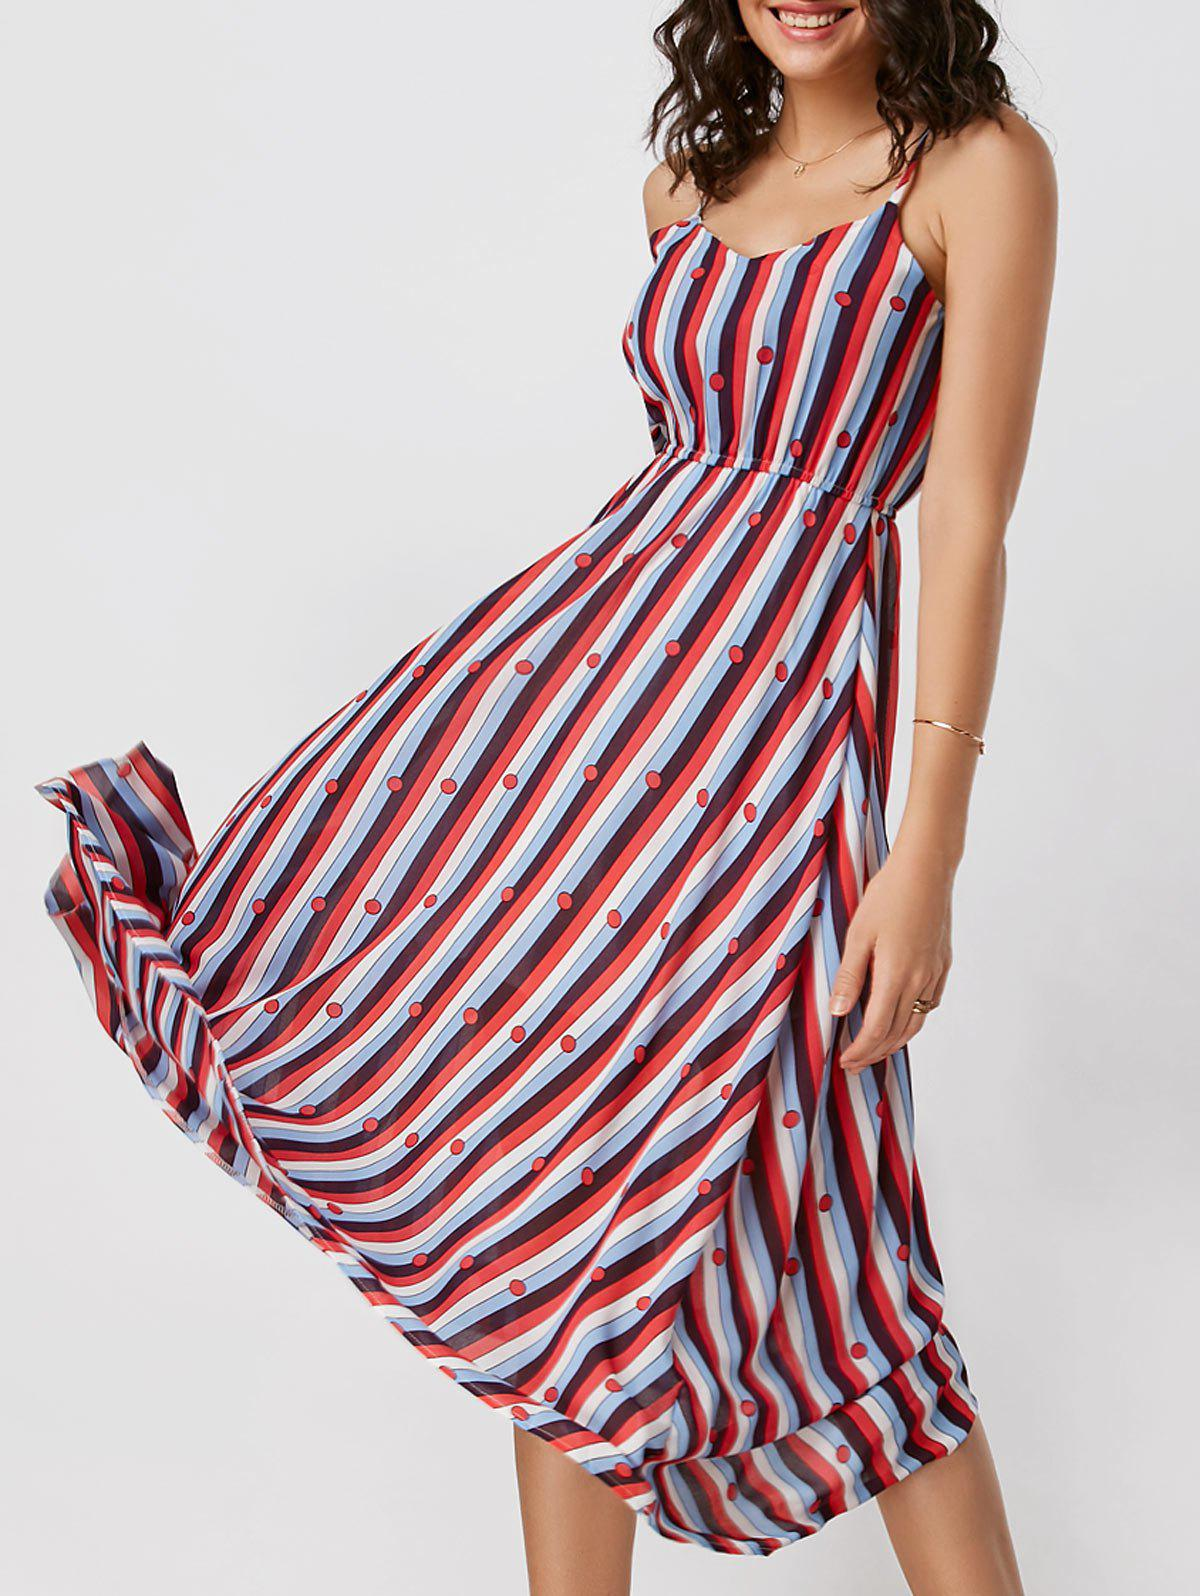 Spaghetti Strap Striped High Waisted Dress - COLORMIX L